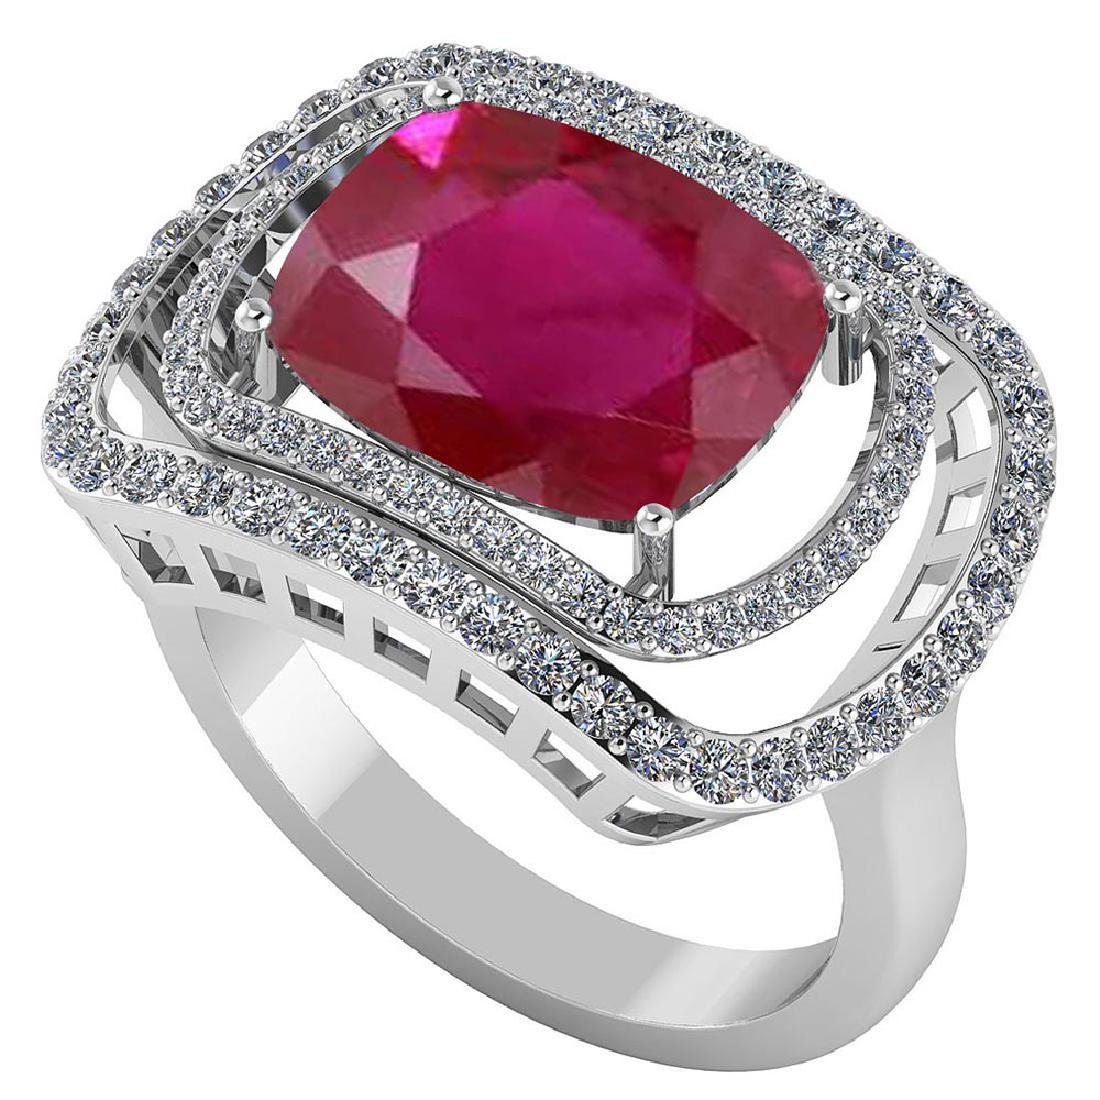 Certified 4.44 CTW Genuine Ruby And Diamond 14K White G